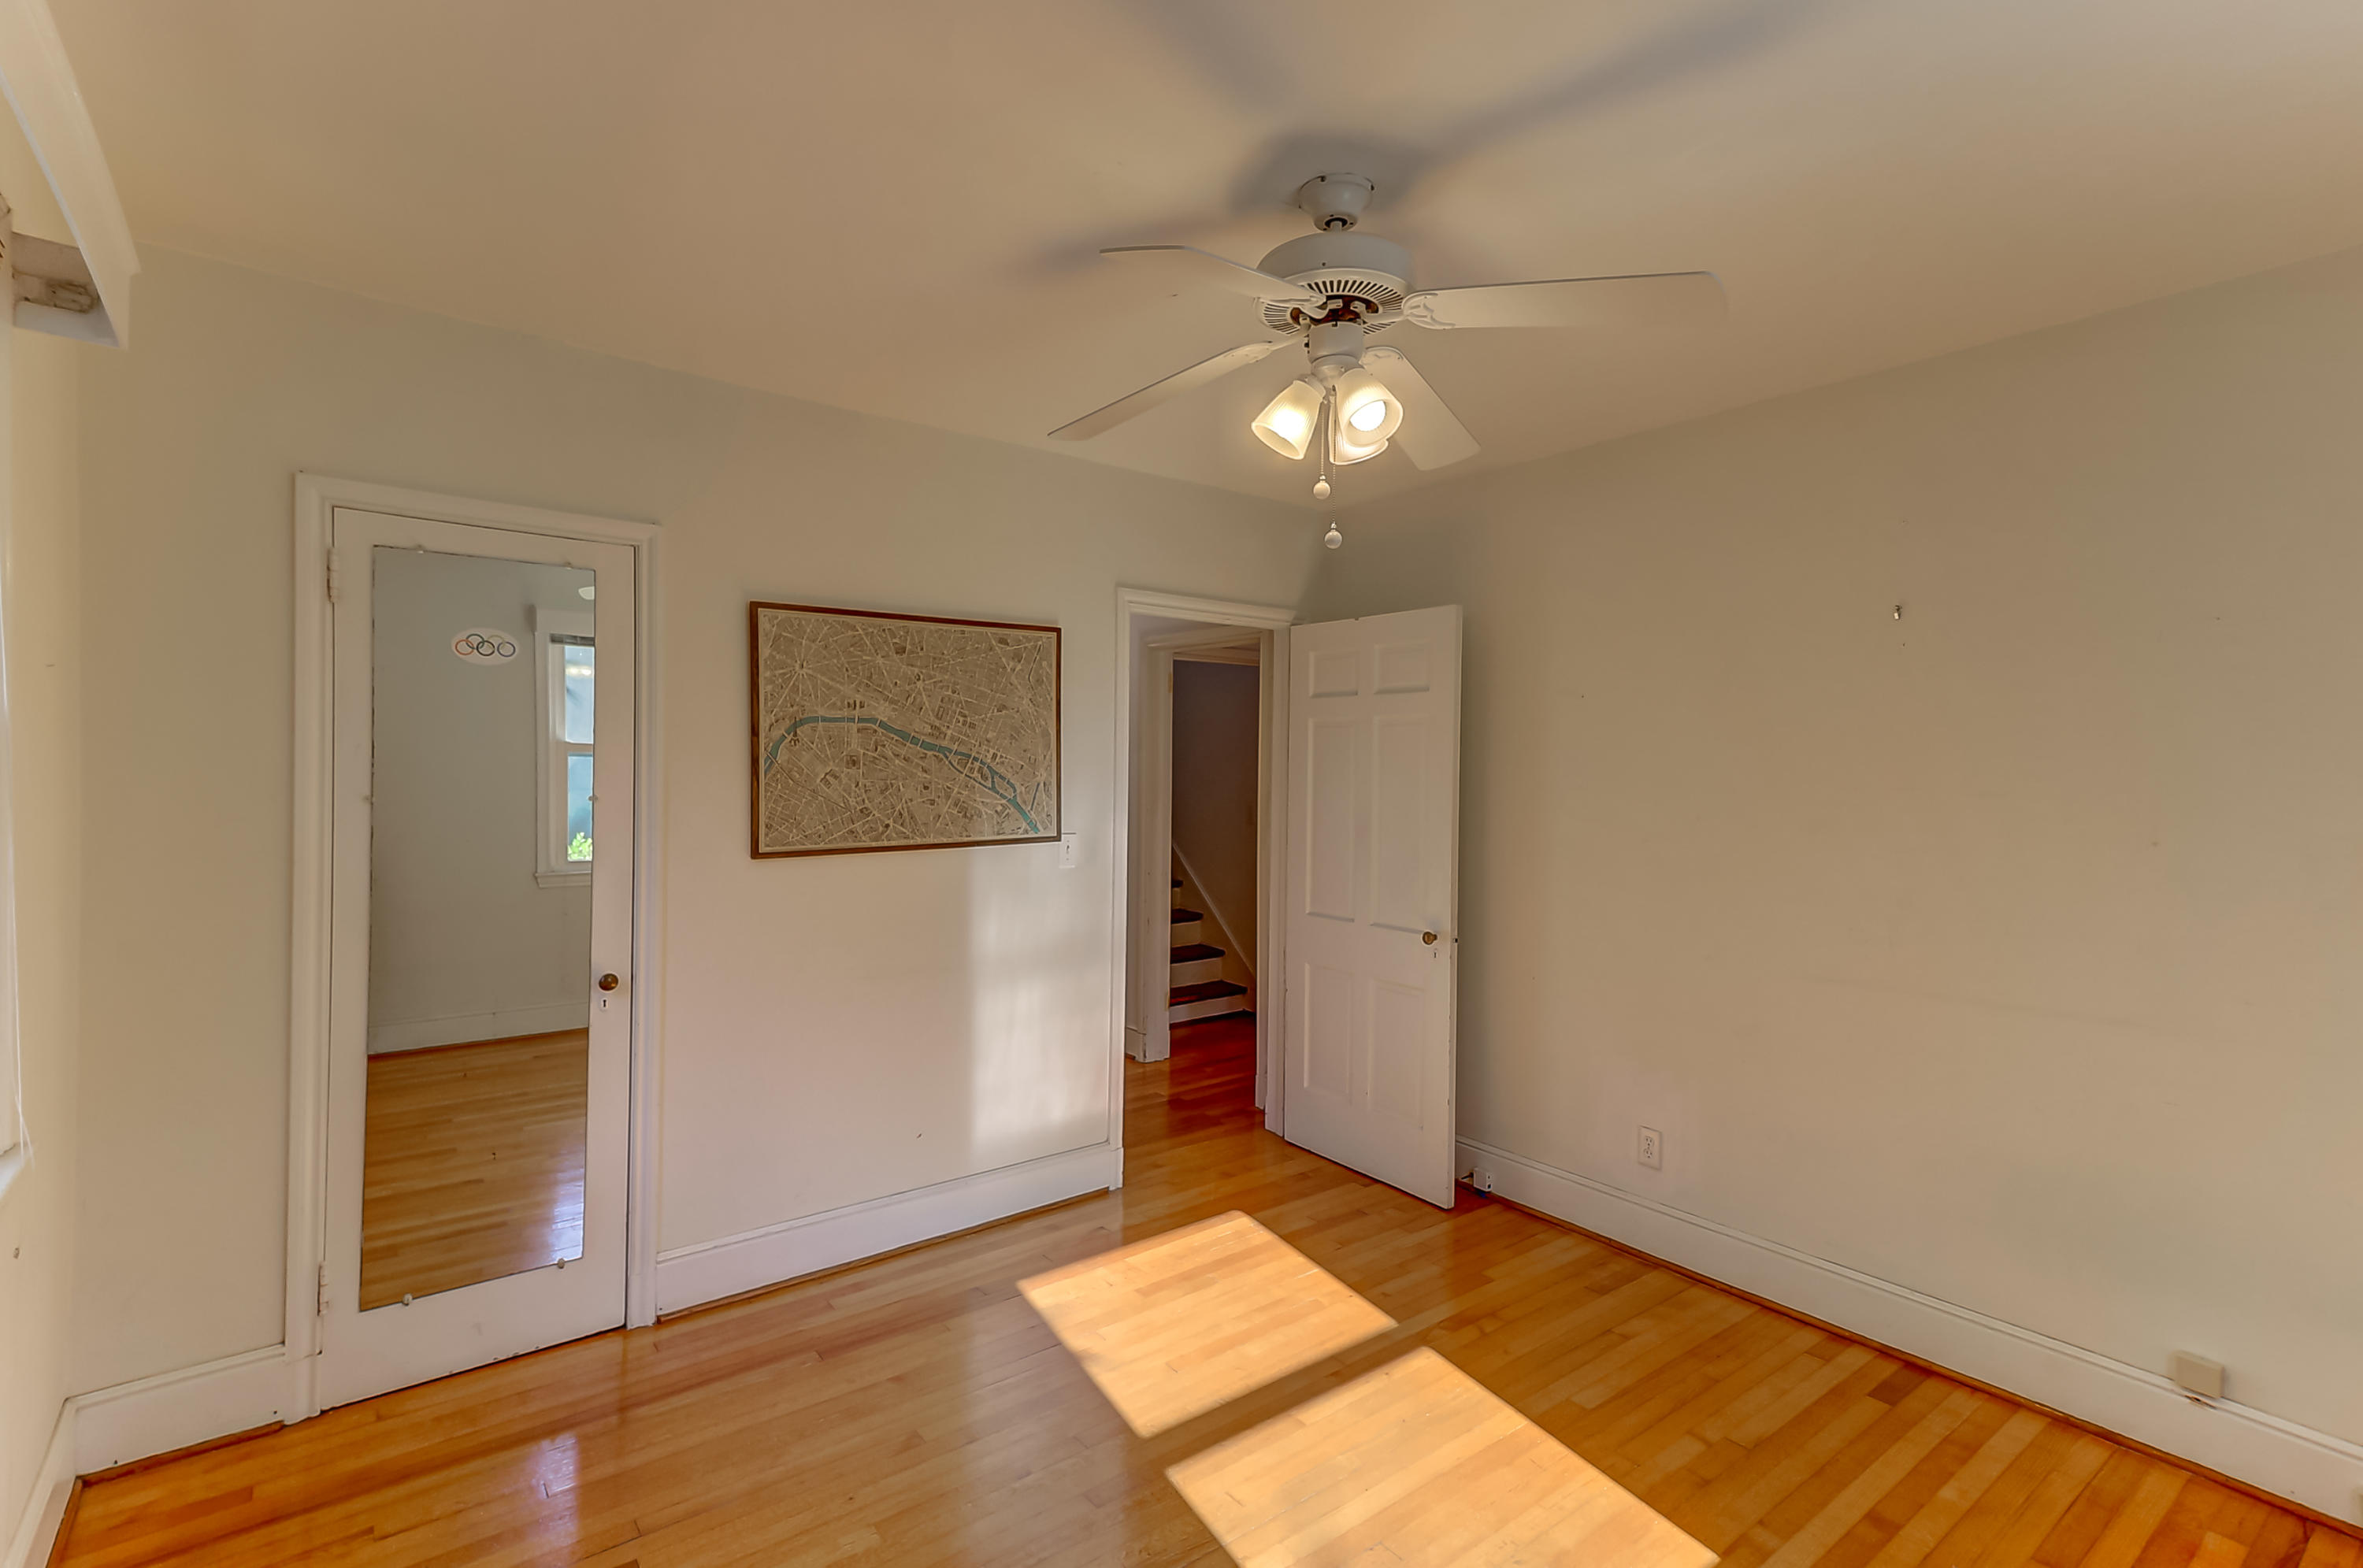 Home for sale 2328 Sunnyside Avenue, Wagener Terrace, Downtown Charleston, SC